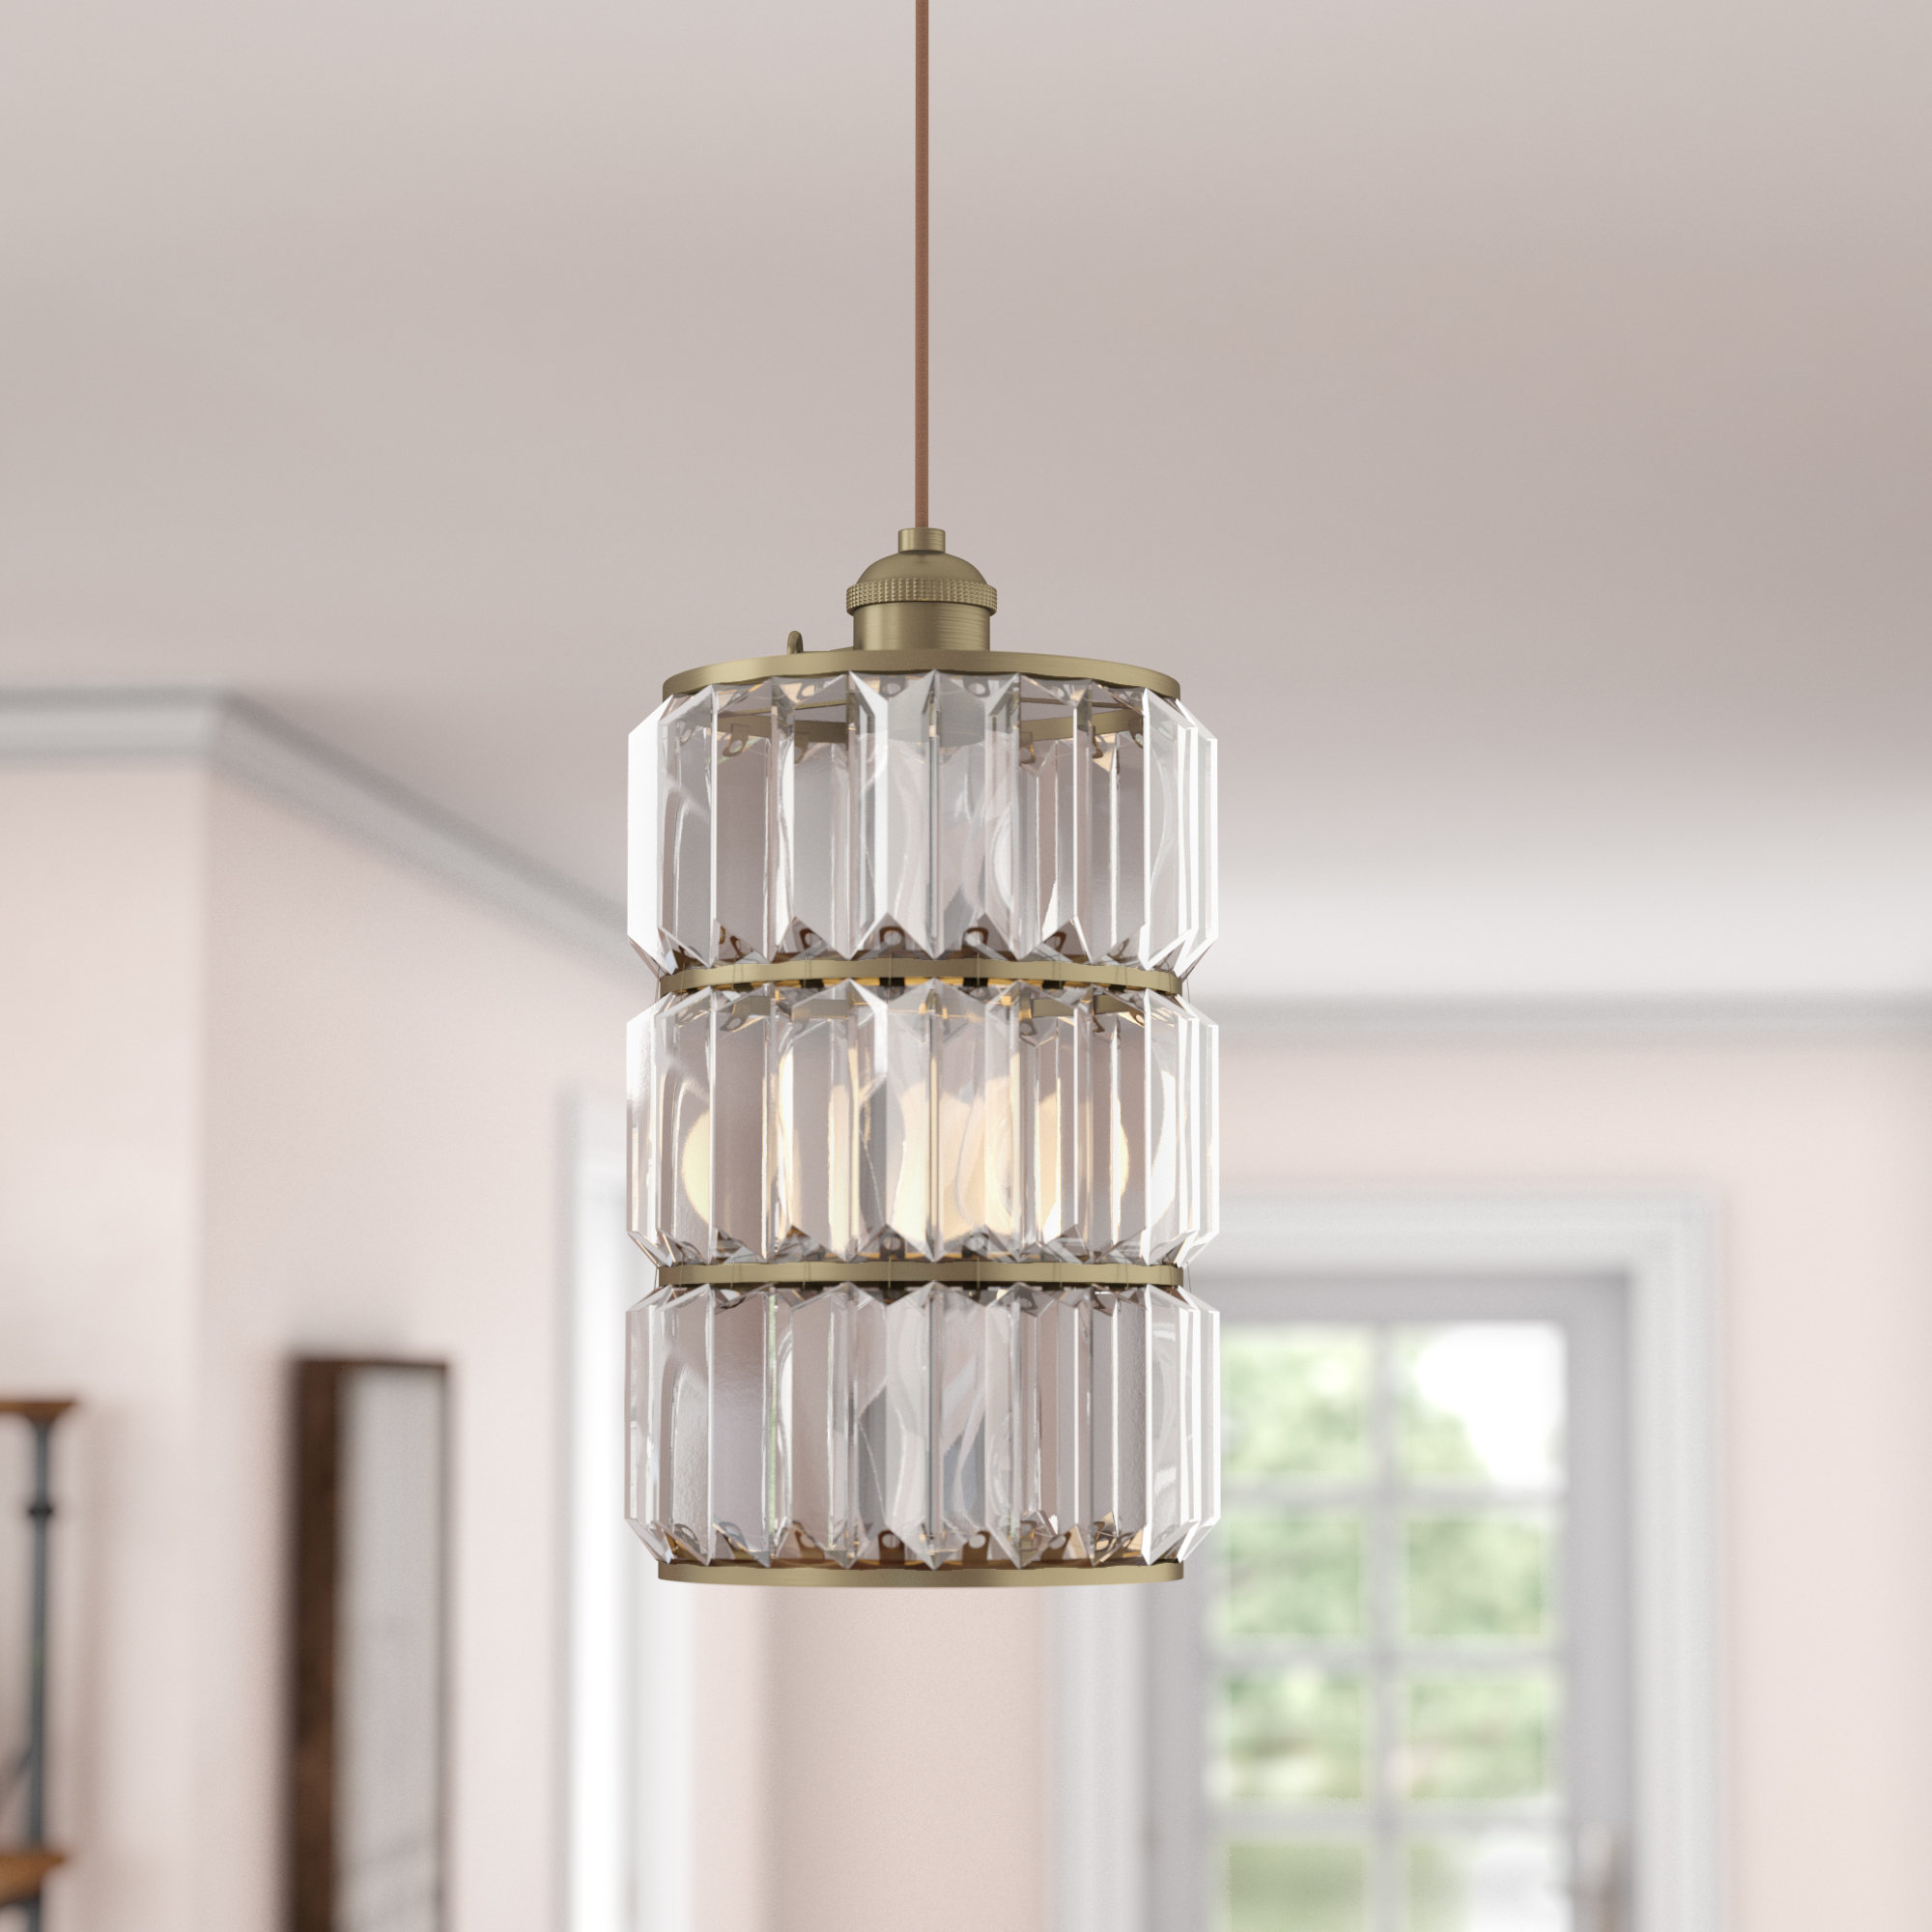 Baxley 1 Light Single Cylinder Pendant With Regard To Trendy Nadeau 1 Light Single Cone Pendants (View 24 of 25)